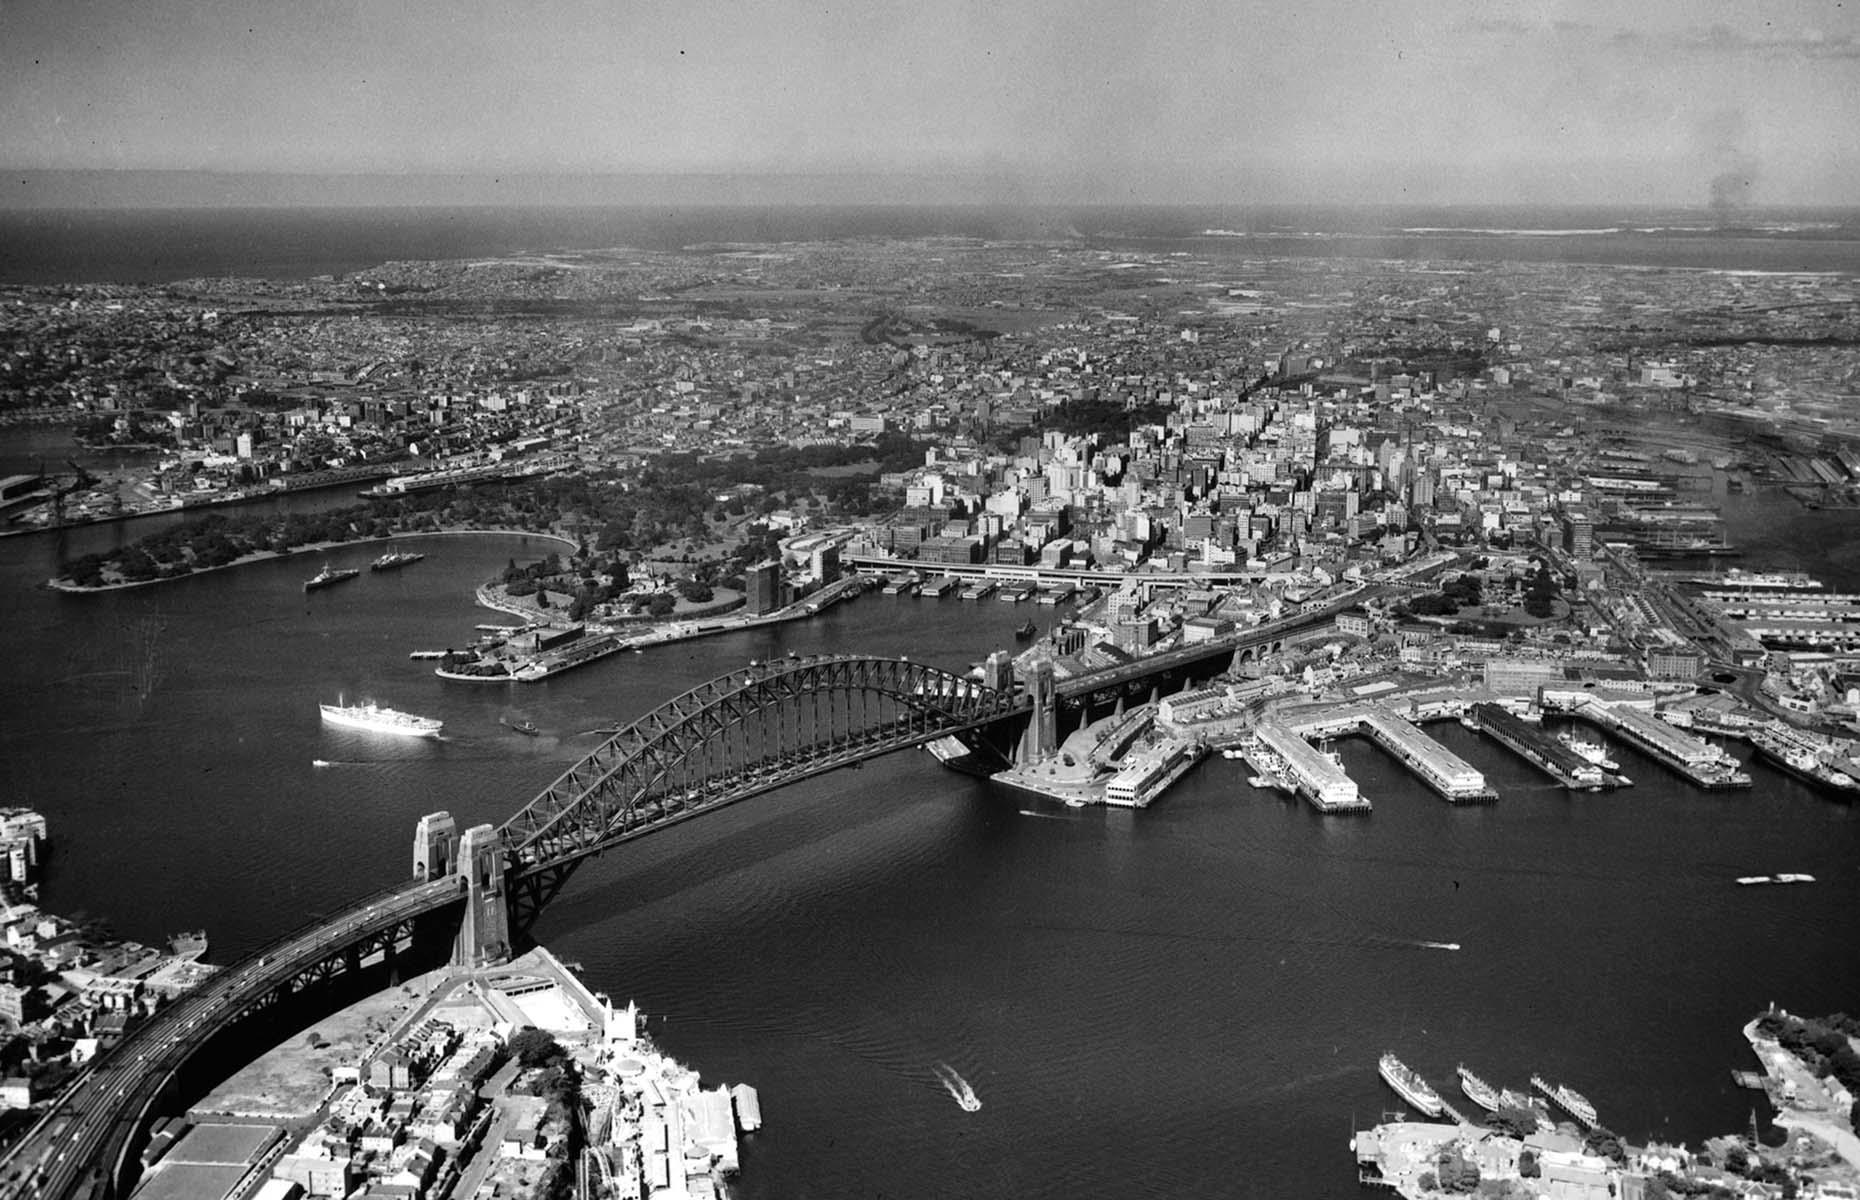 Slide 20 of 27: Australia's most populous city, Sydney has a tumultuous history, marred by countless conflicts, leading up to the 19th century when the situation stabilized and the city established itself as a major cultural and financial center in Australia. Although the Great Depression hit the country hard, the iconic Sydney Harbour Bridge was opened in May 1932. After the war, the city boomed and new industries grew, inspiring widespread development. But, captured here in 1955, Sydney Harbour is still missing a key landmark that was opened in 1973...